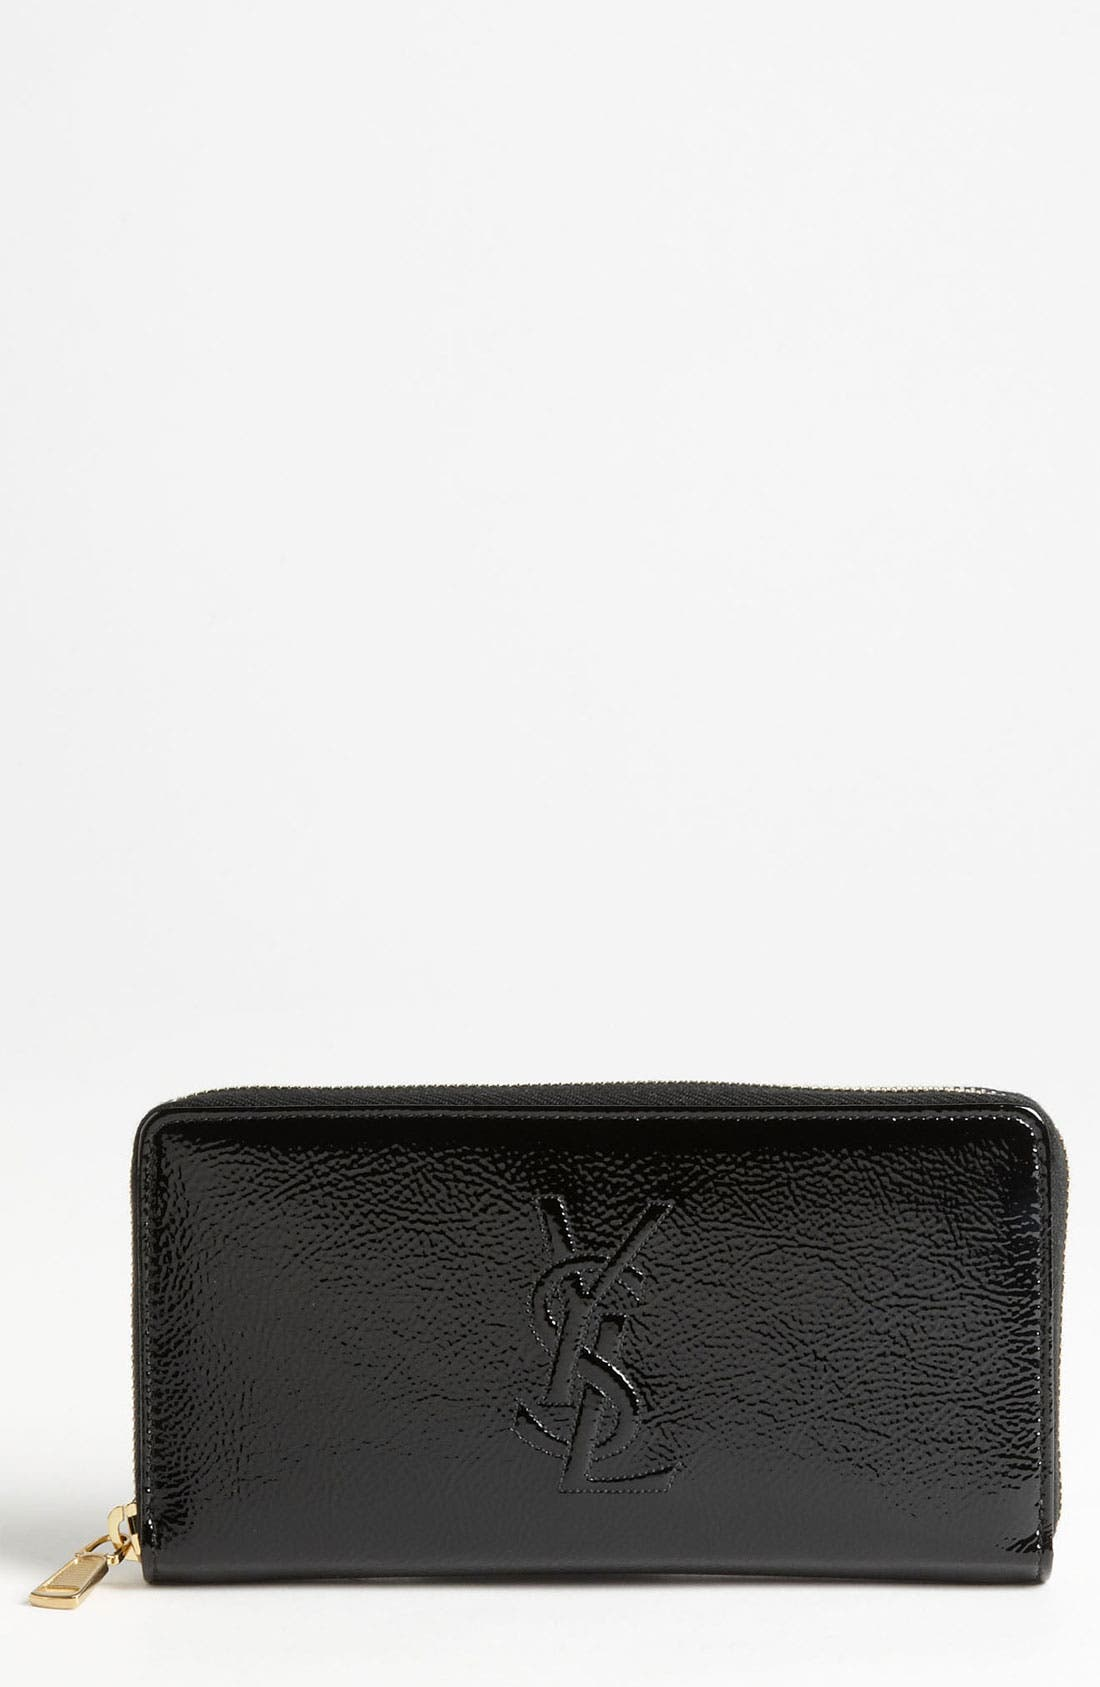 Alternate Image 1 Selected - Saint Laurent 'Belle de Jour' Leather Wallet